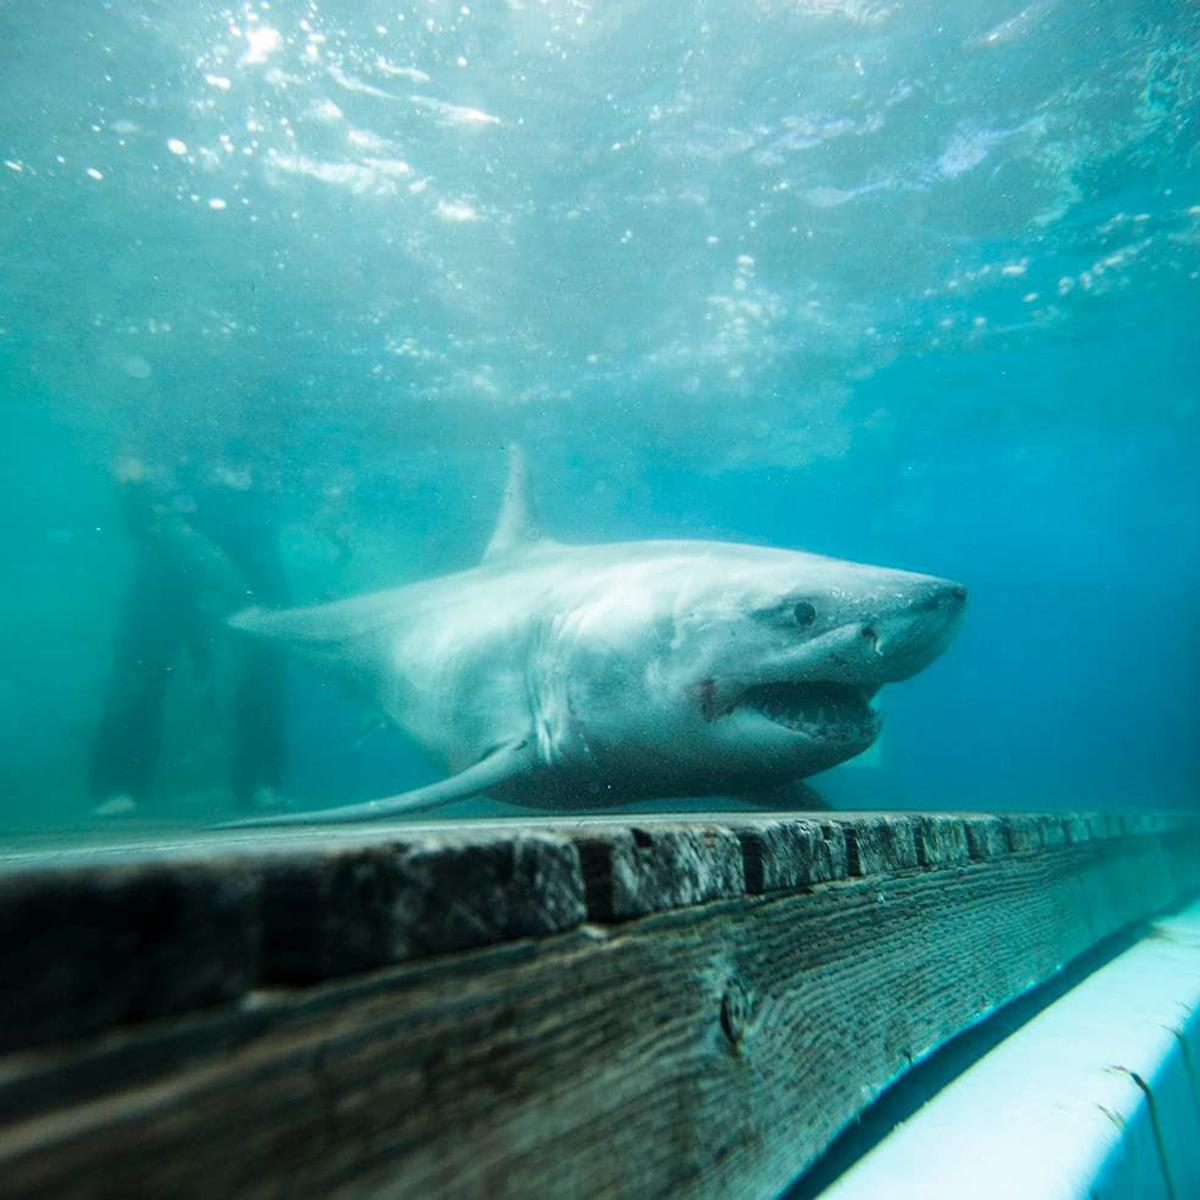 10 Foot Shark Lurking Off Outer Banks May Be Afraid To Cross Forbidding Sea Barrier Local News Greensboro Com